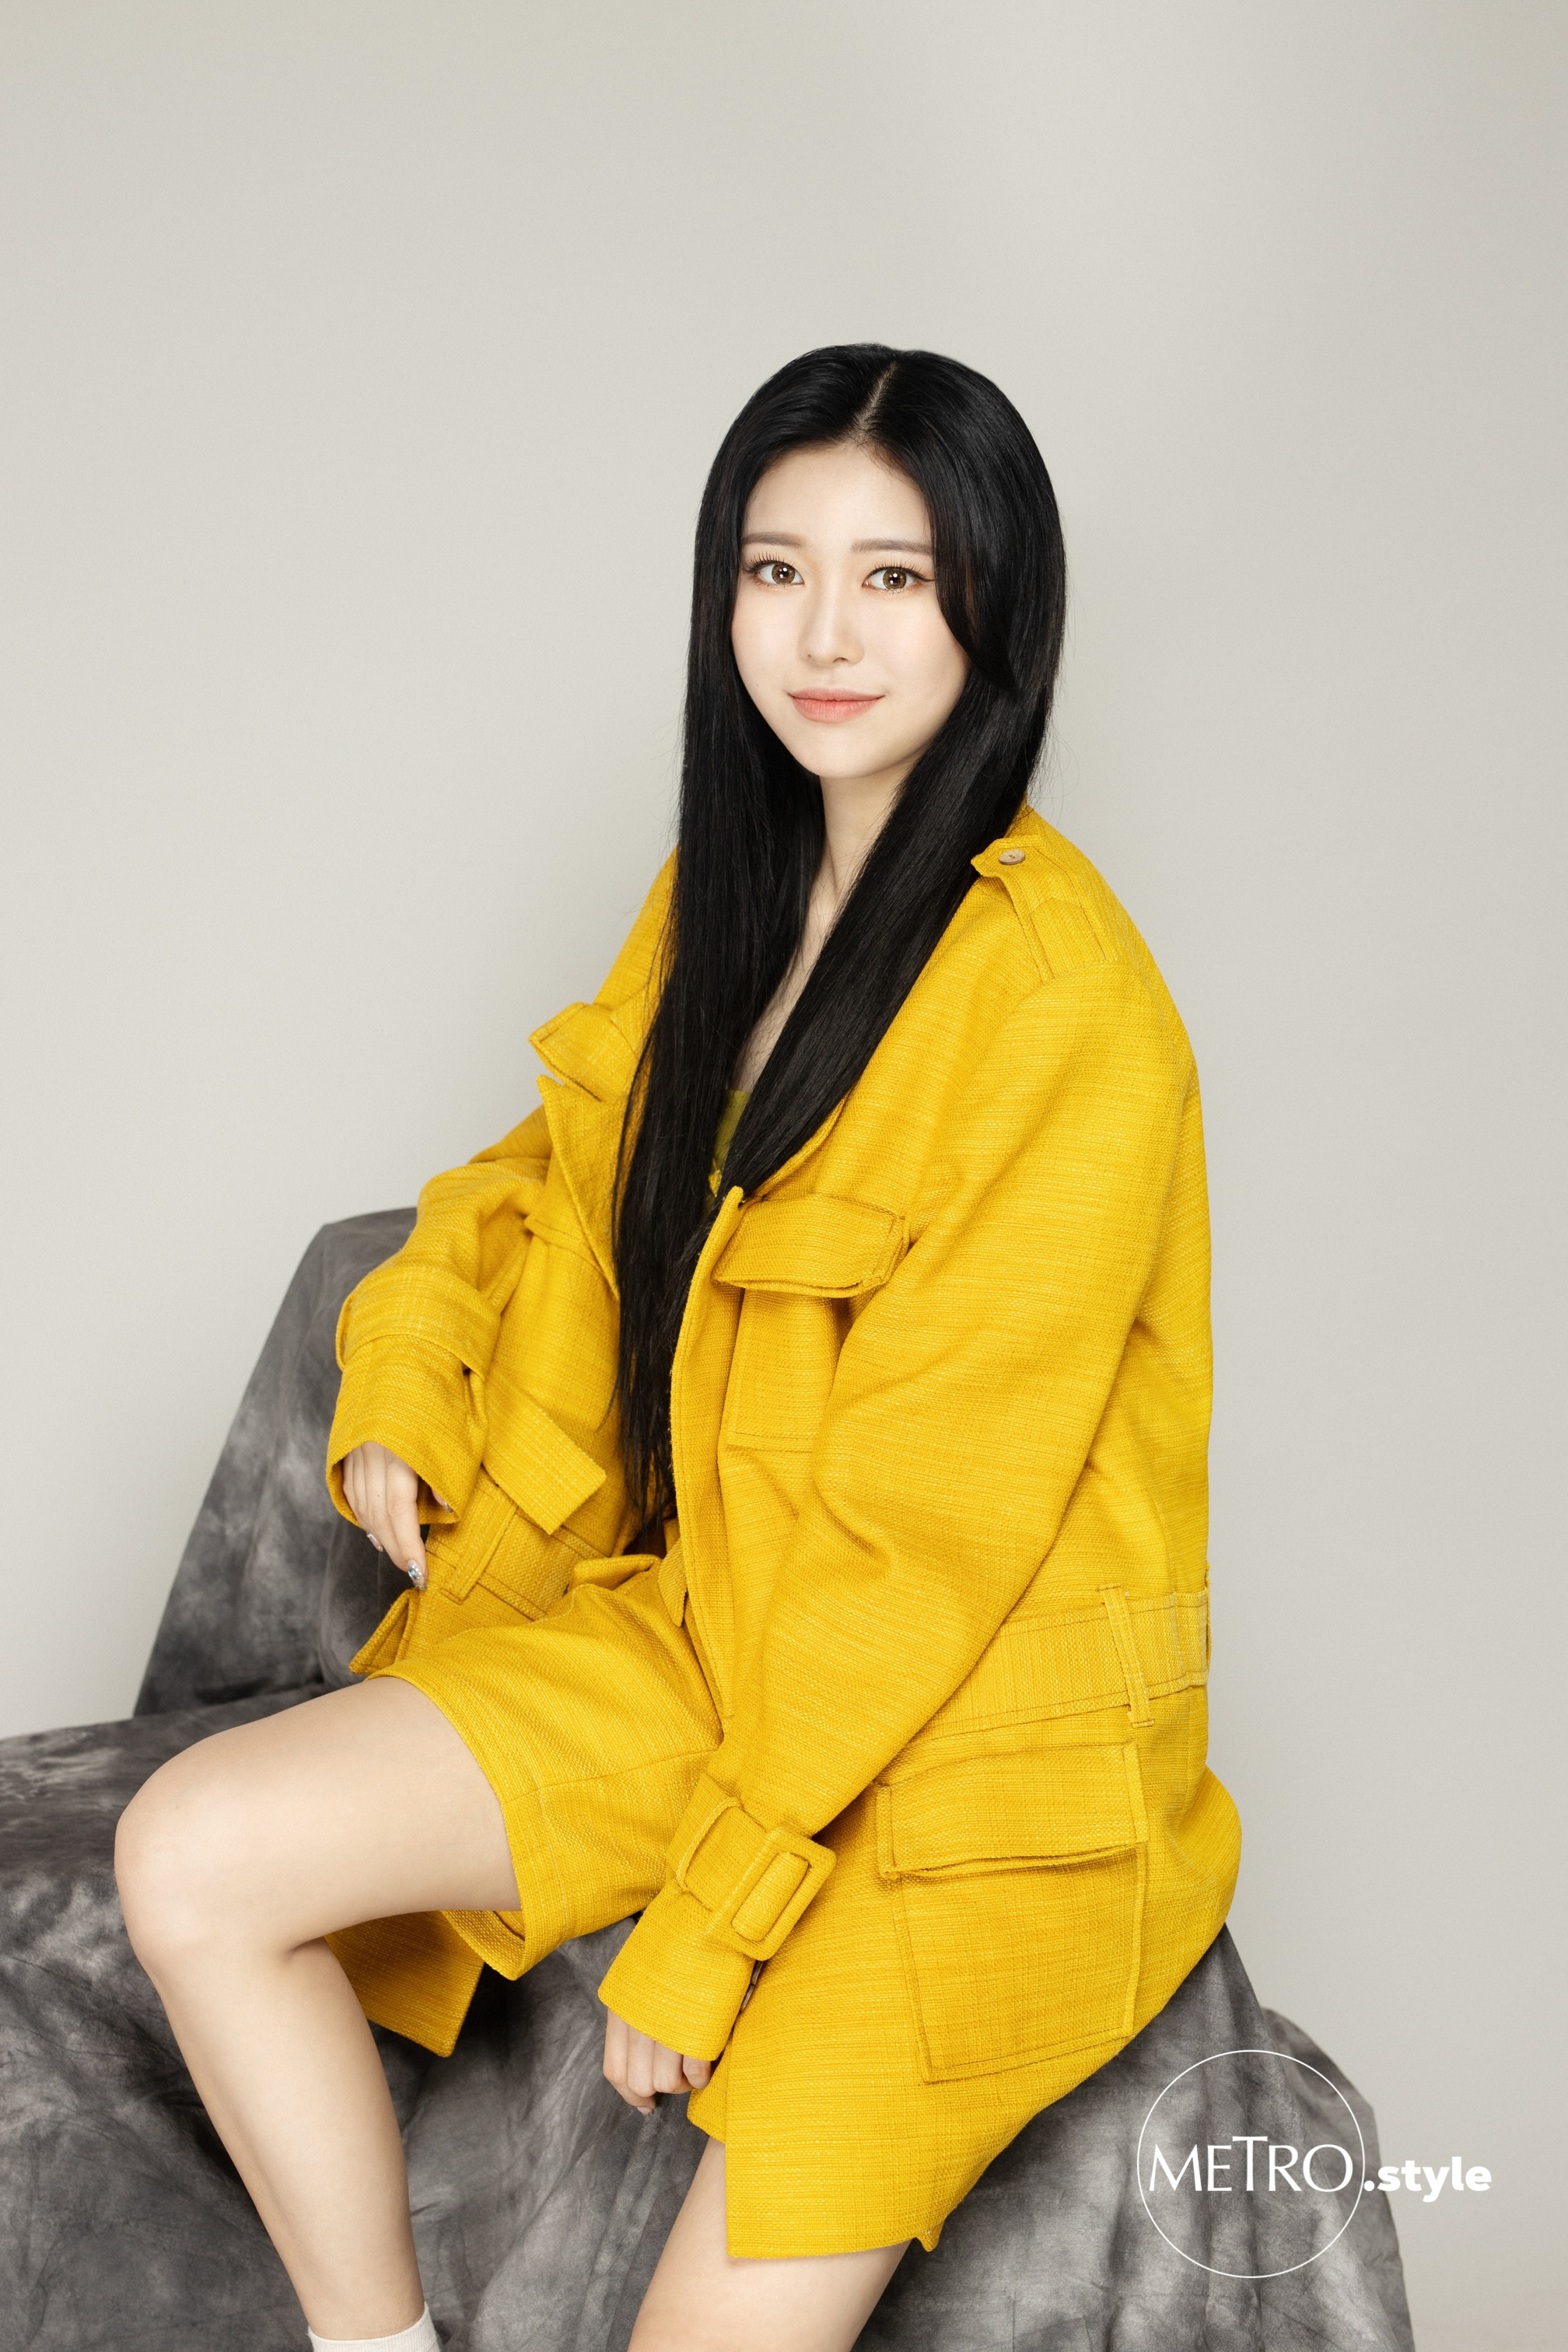 MOMOLAND's Jane on Metro.Style